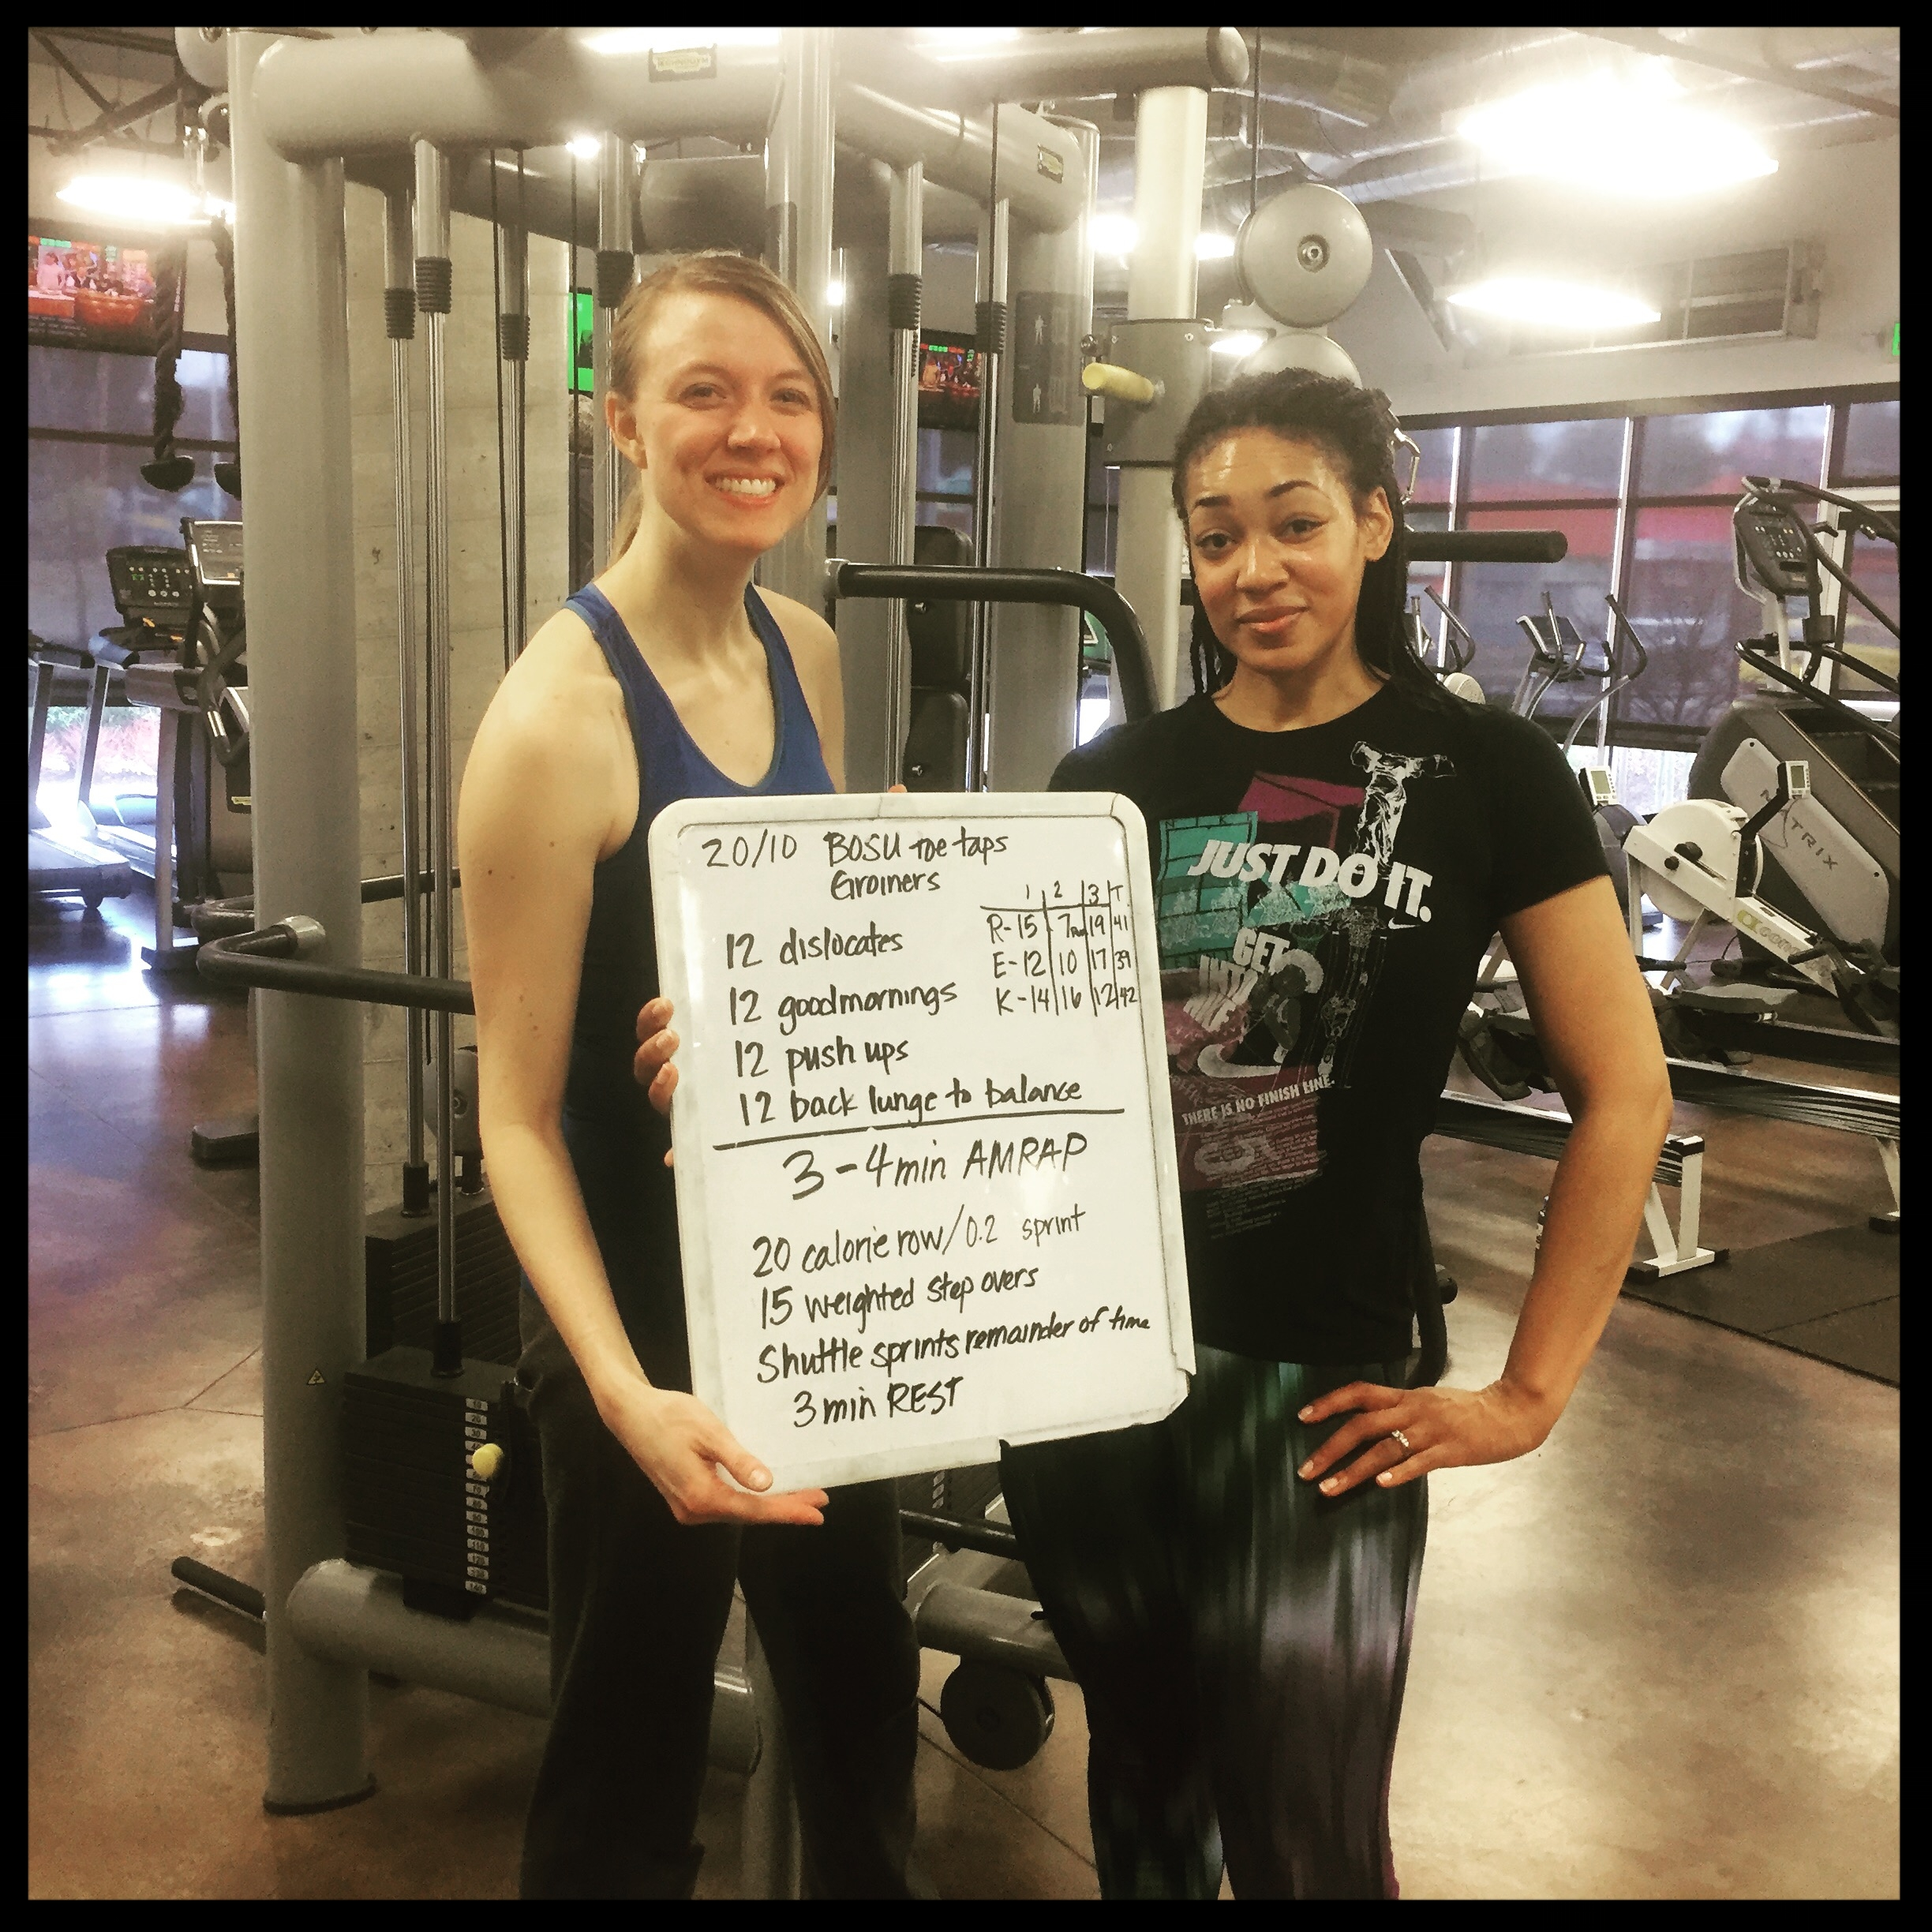 Post-Group Training session with office-mate and Challenge participant Rosa